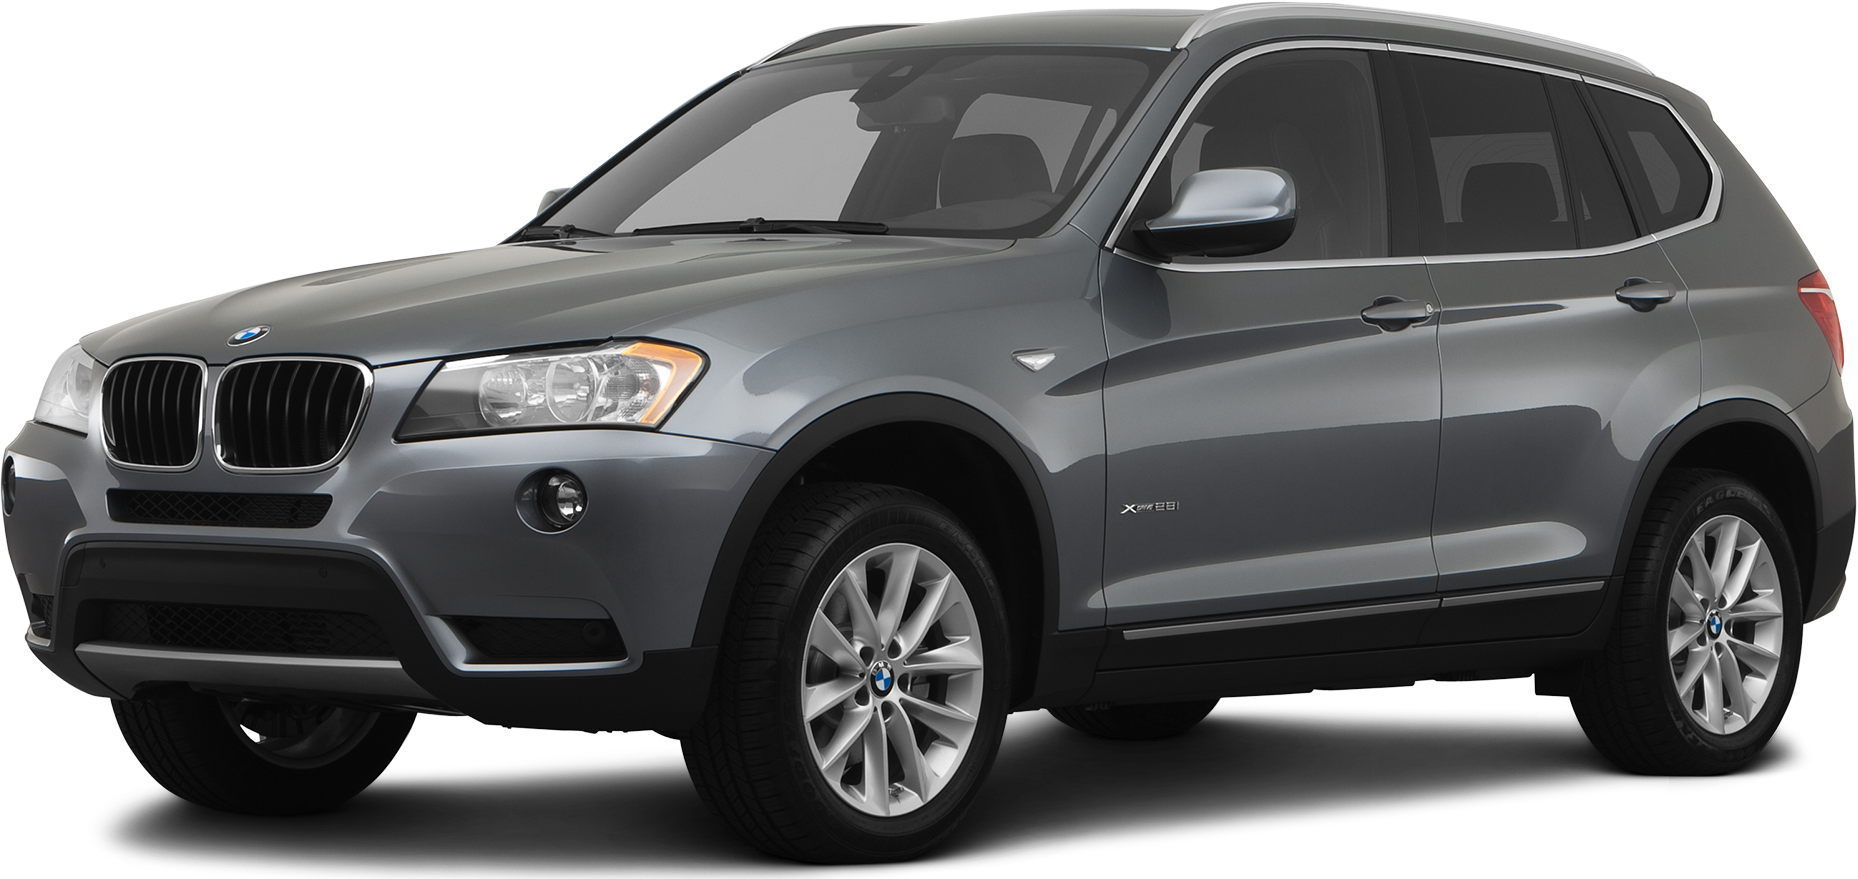 2013 Bmw X3 Values Cars For Sale Kelley Blue Book